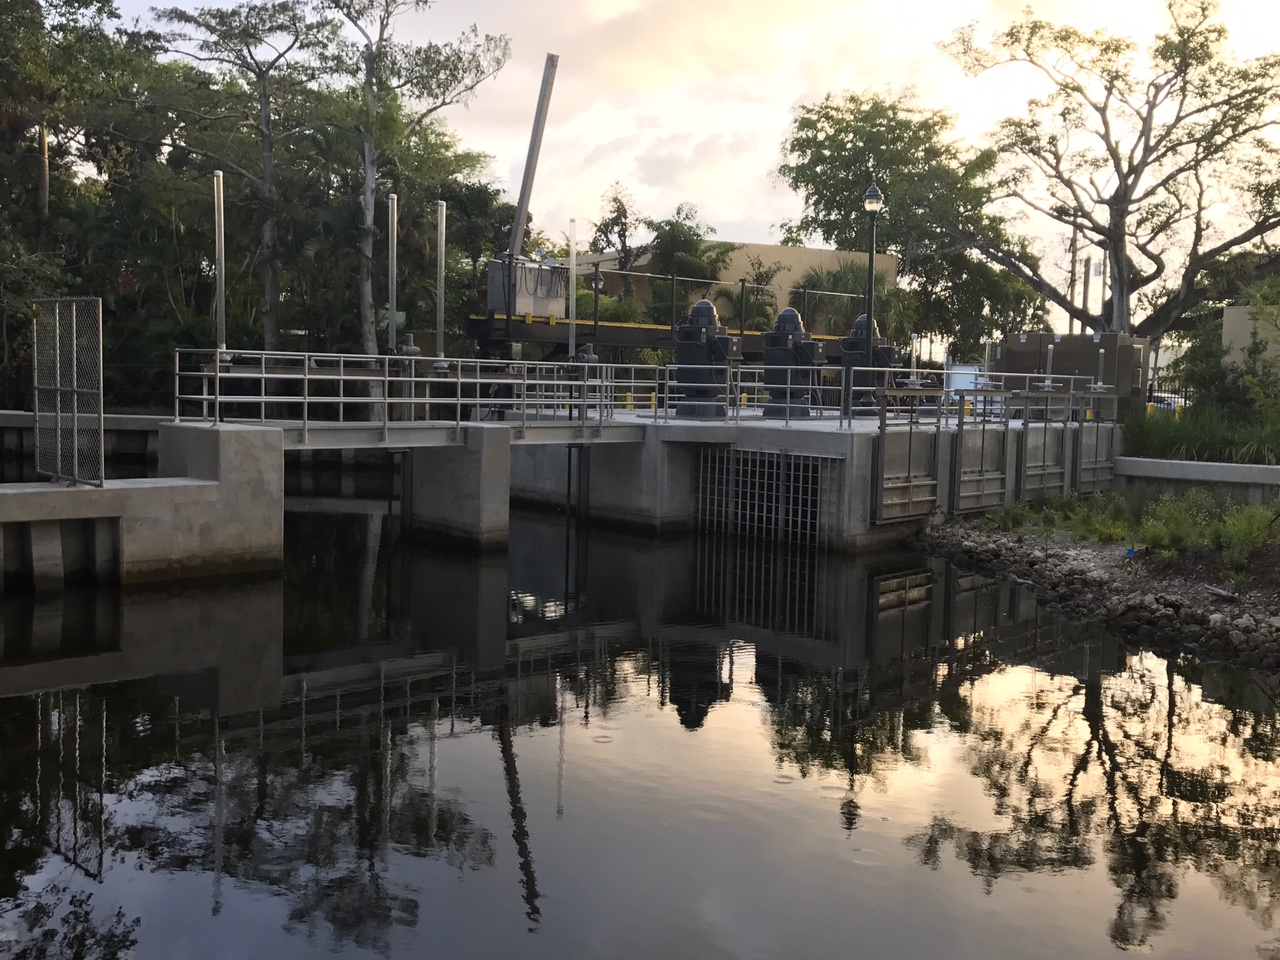 Pump Station: City of Oakland Park